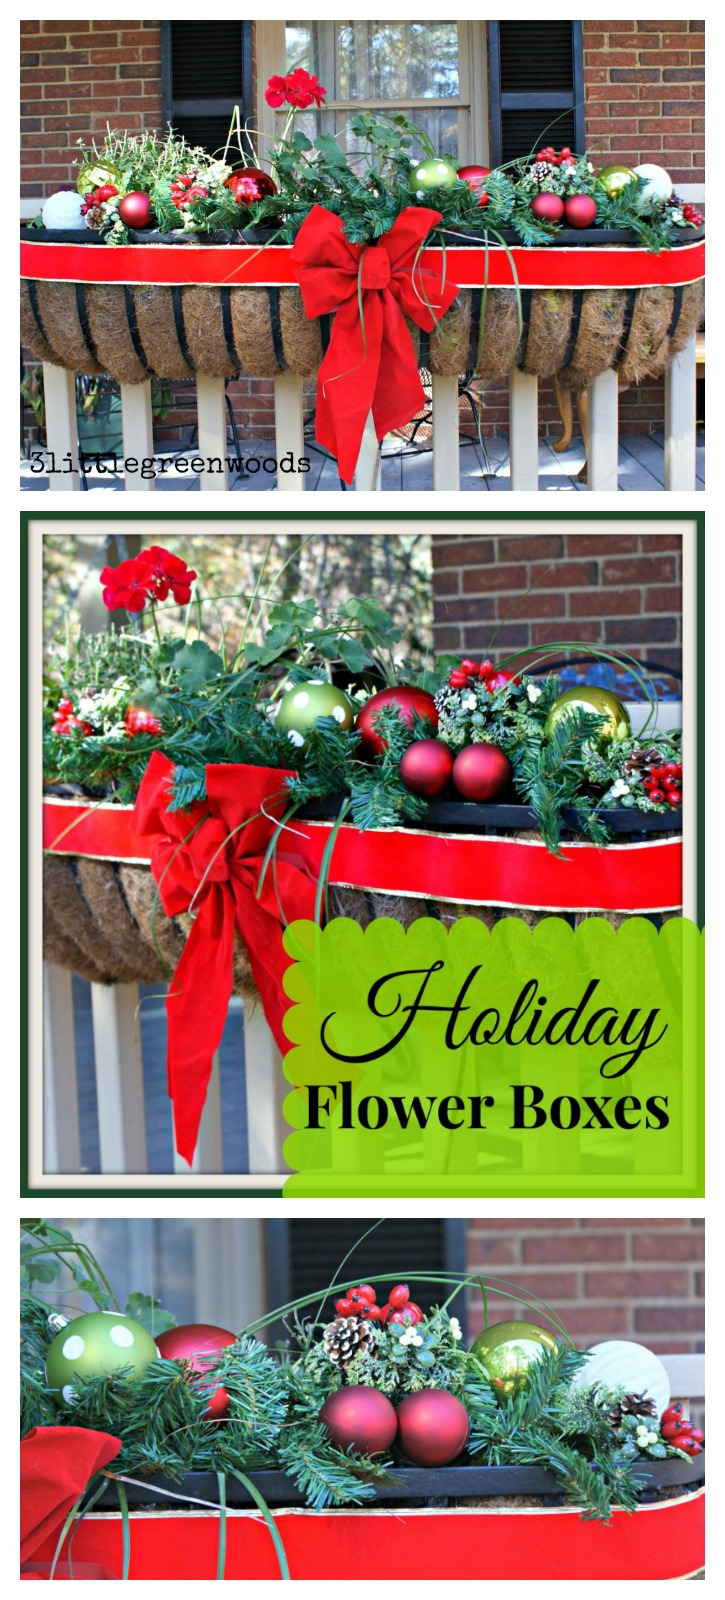 i love these flower boxes on this christmas front porch awesome outdoor decorations - Discount Outdoor Christmas Decorations